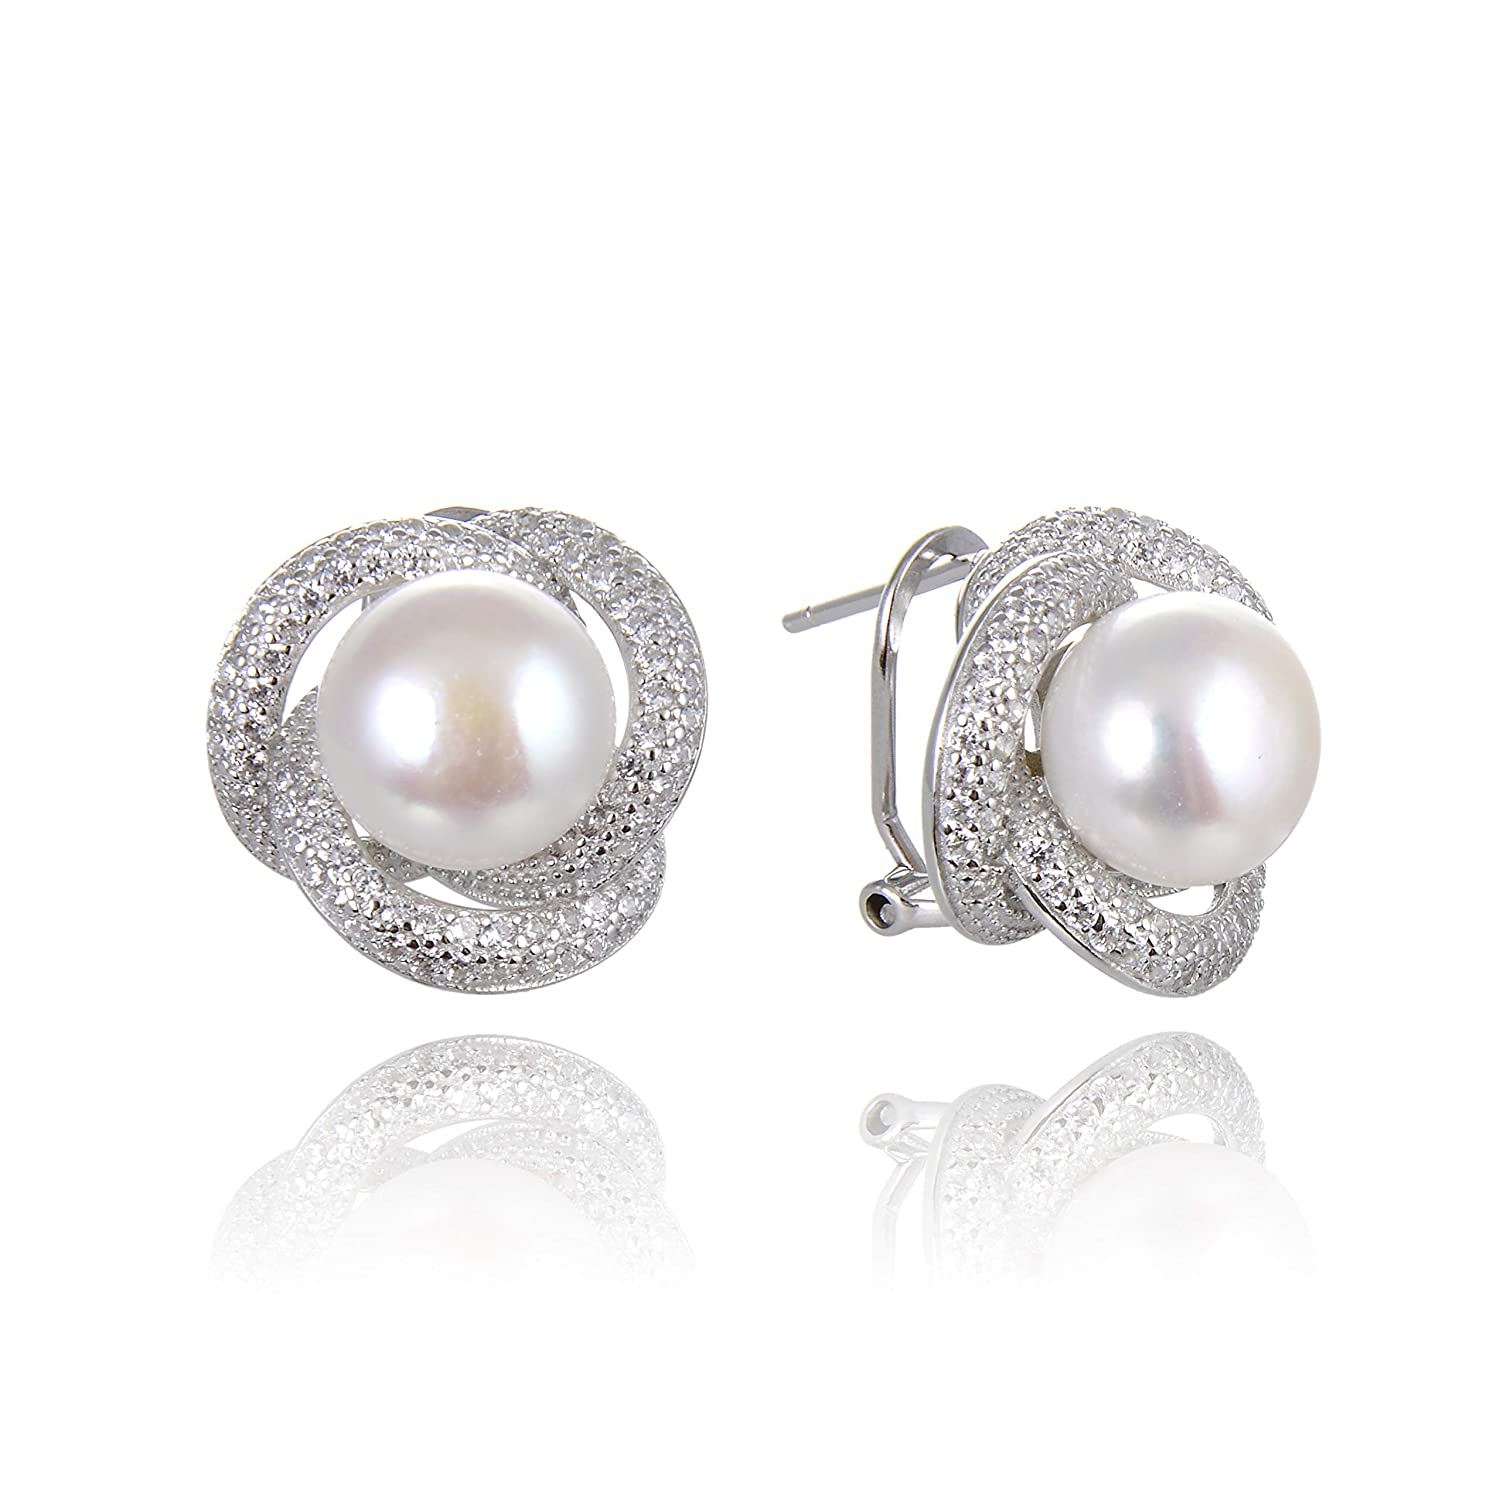 c93ce4c73 Ameriwal Natural White Color Fresh Water Pearl Stud Earring Necklace Set  with CZ and 925 Sterling Silver Custom Made for Fashion Wear Suitable for  All ...